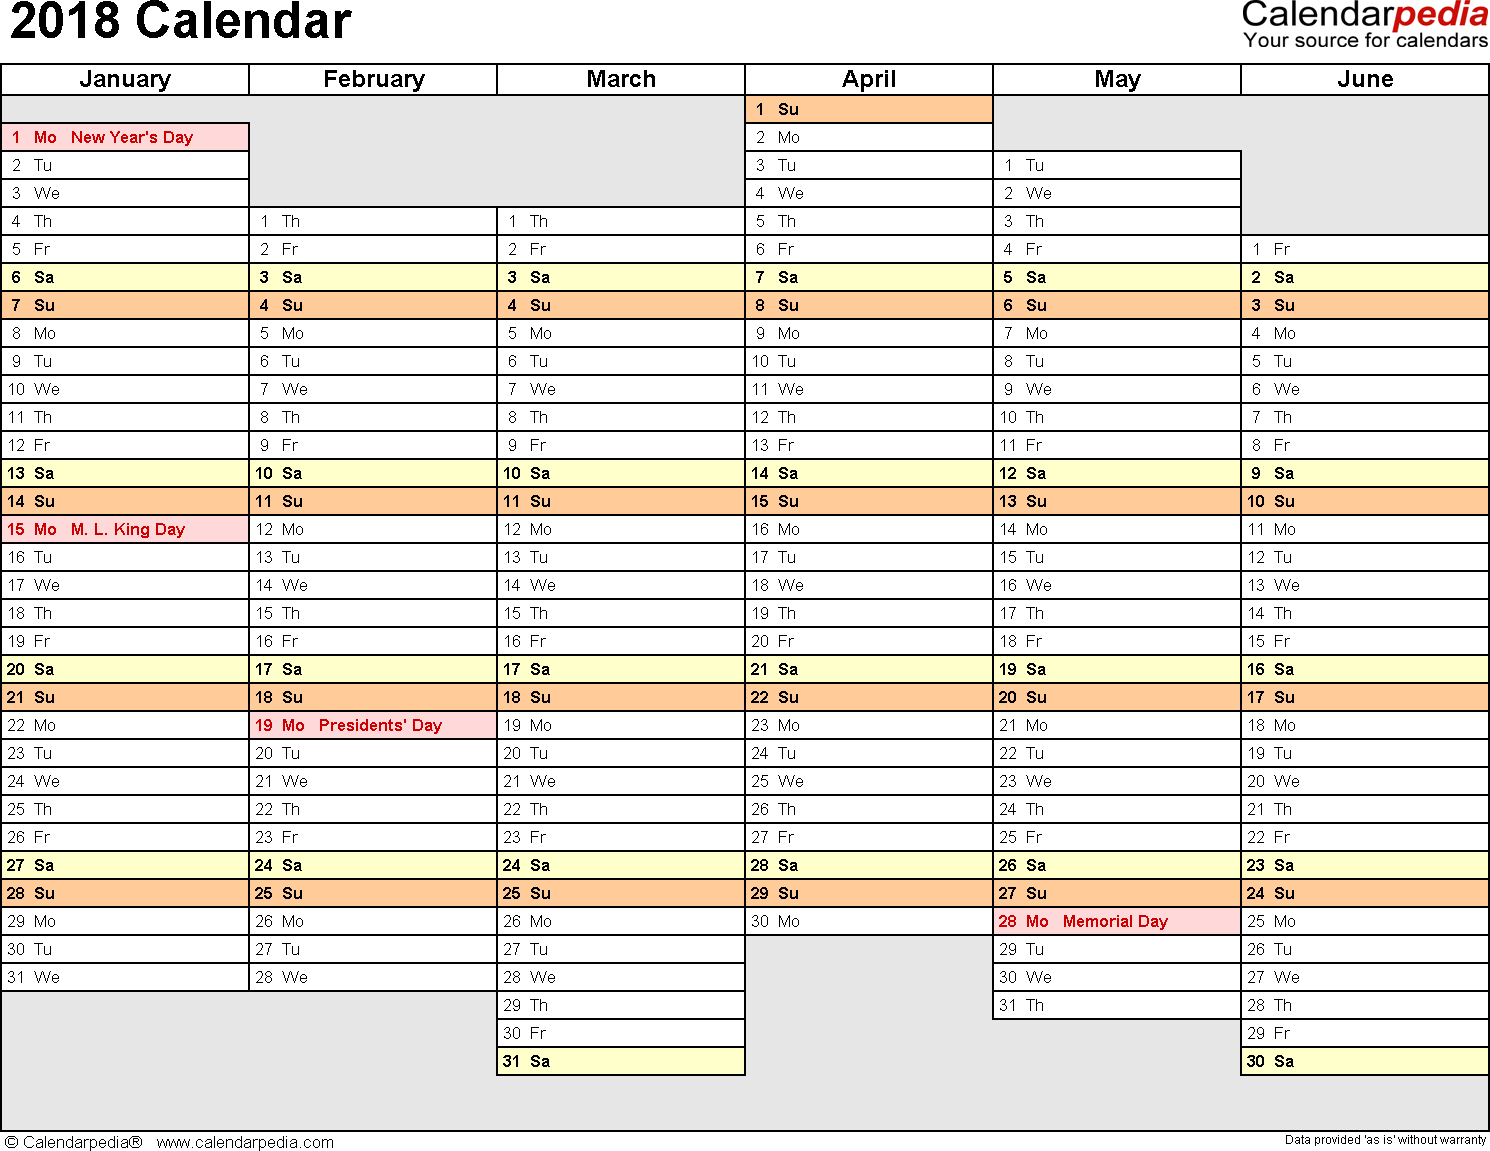 Template 6: 2018 Calendar for PDF, months horizontally, 2 pages, days of the week in line/linear, landscape orientation